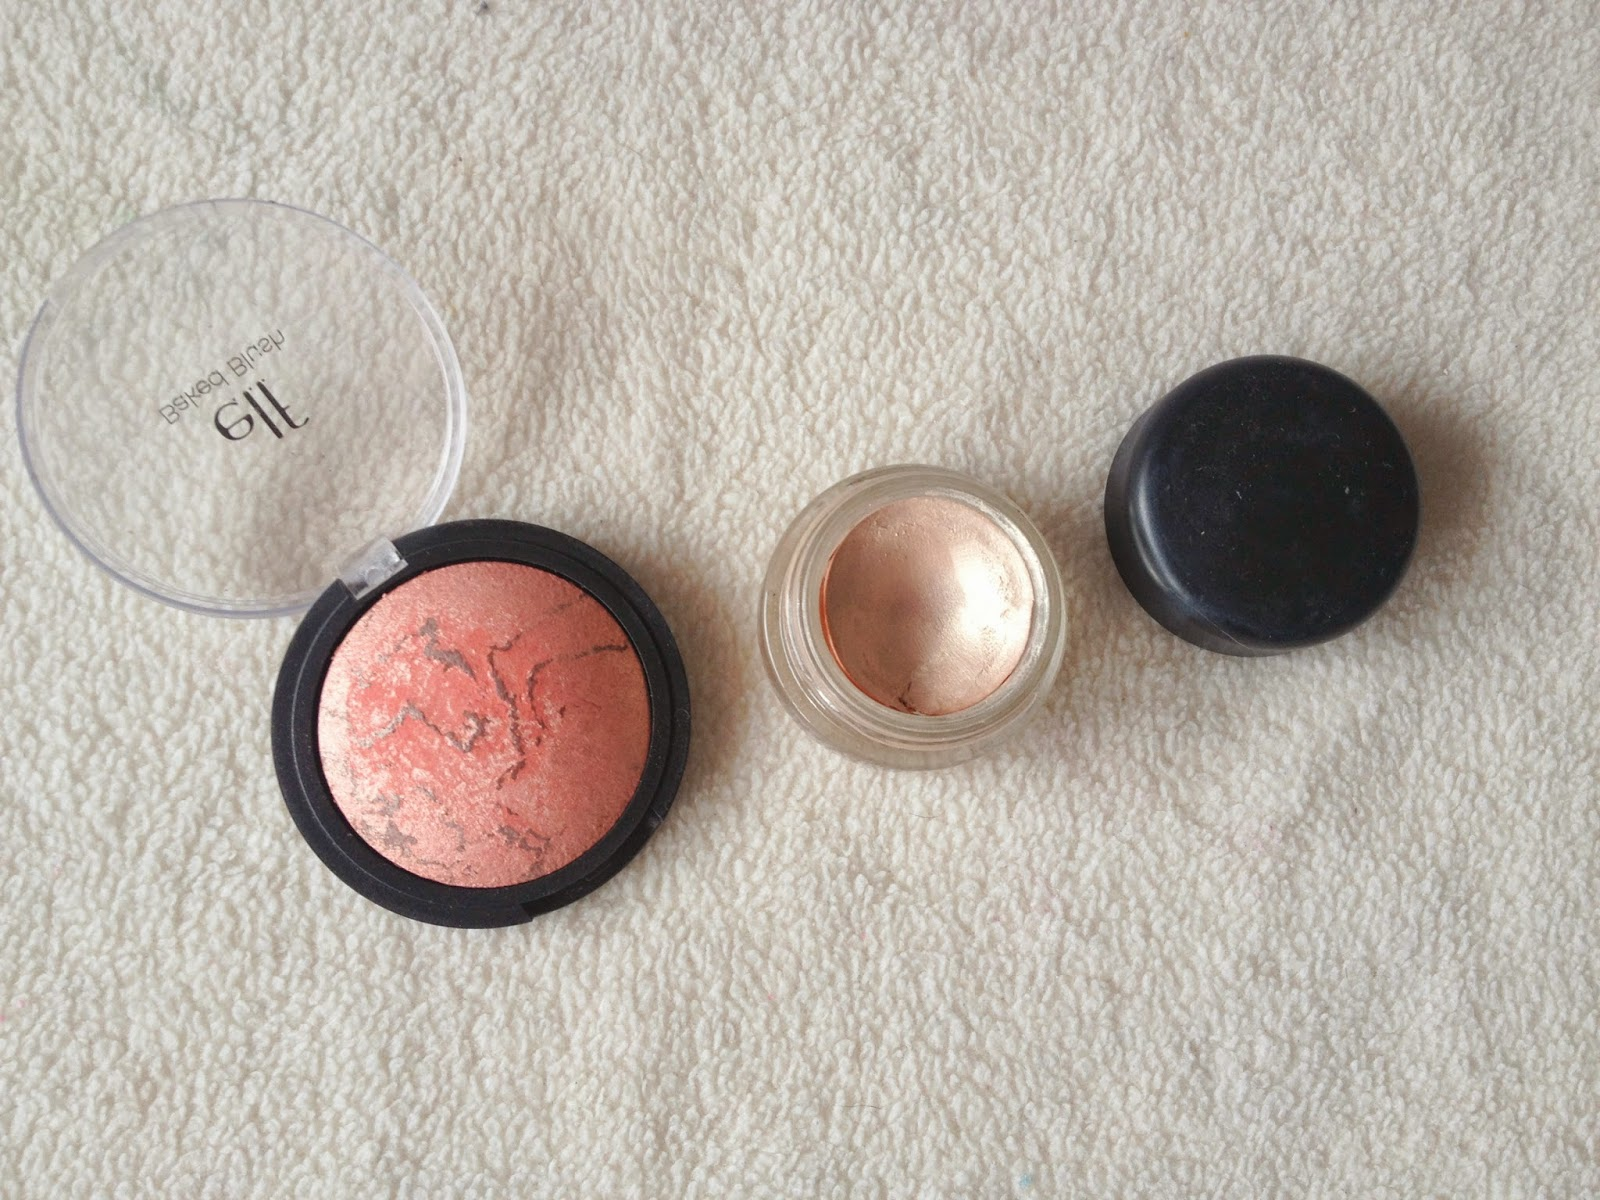 Elf Baked Blush in Peachy Cheeky and MAC Bare Study Paintpot